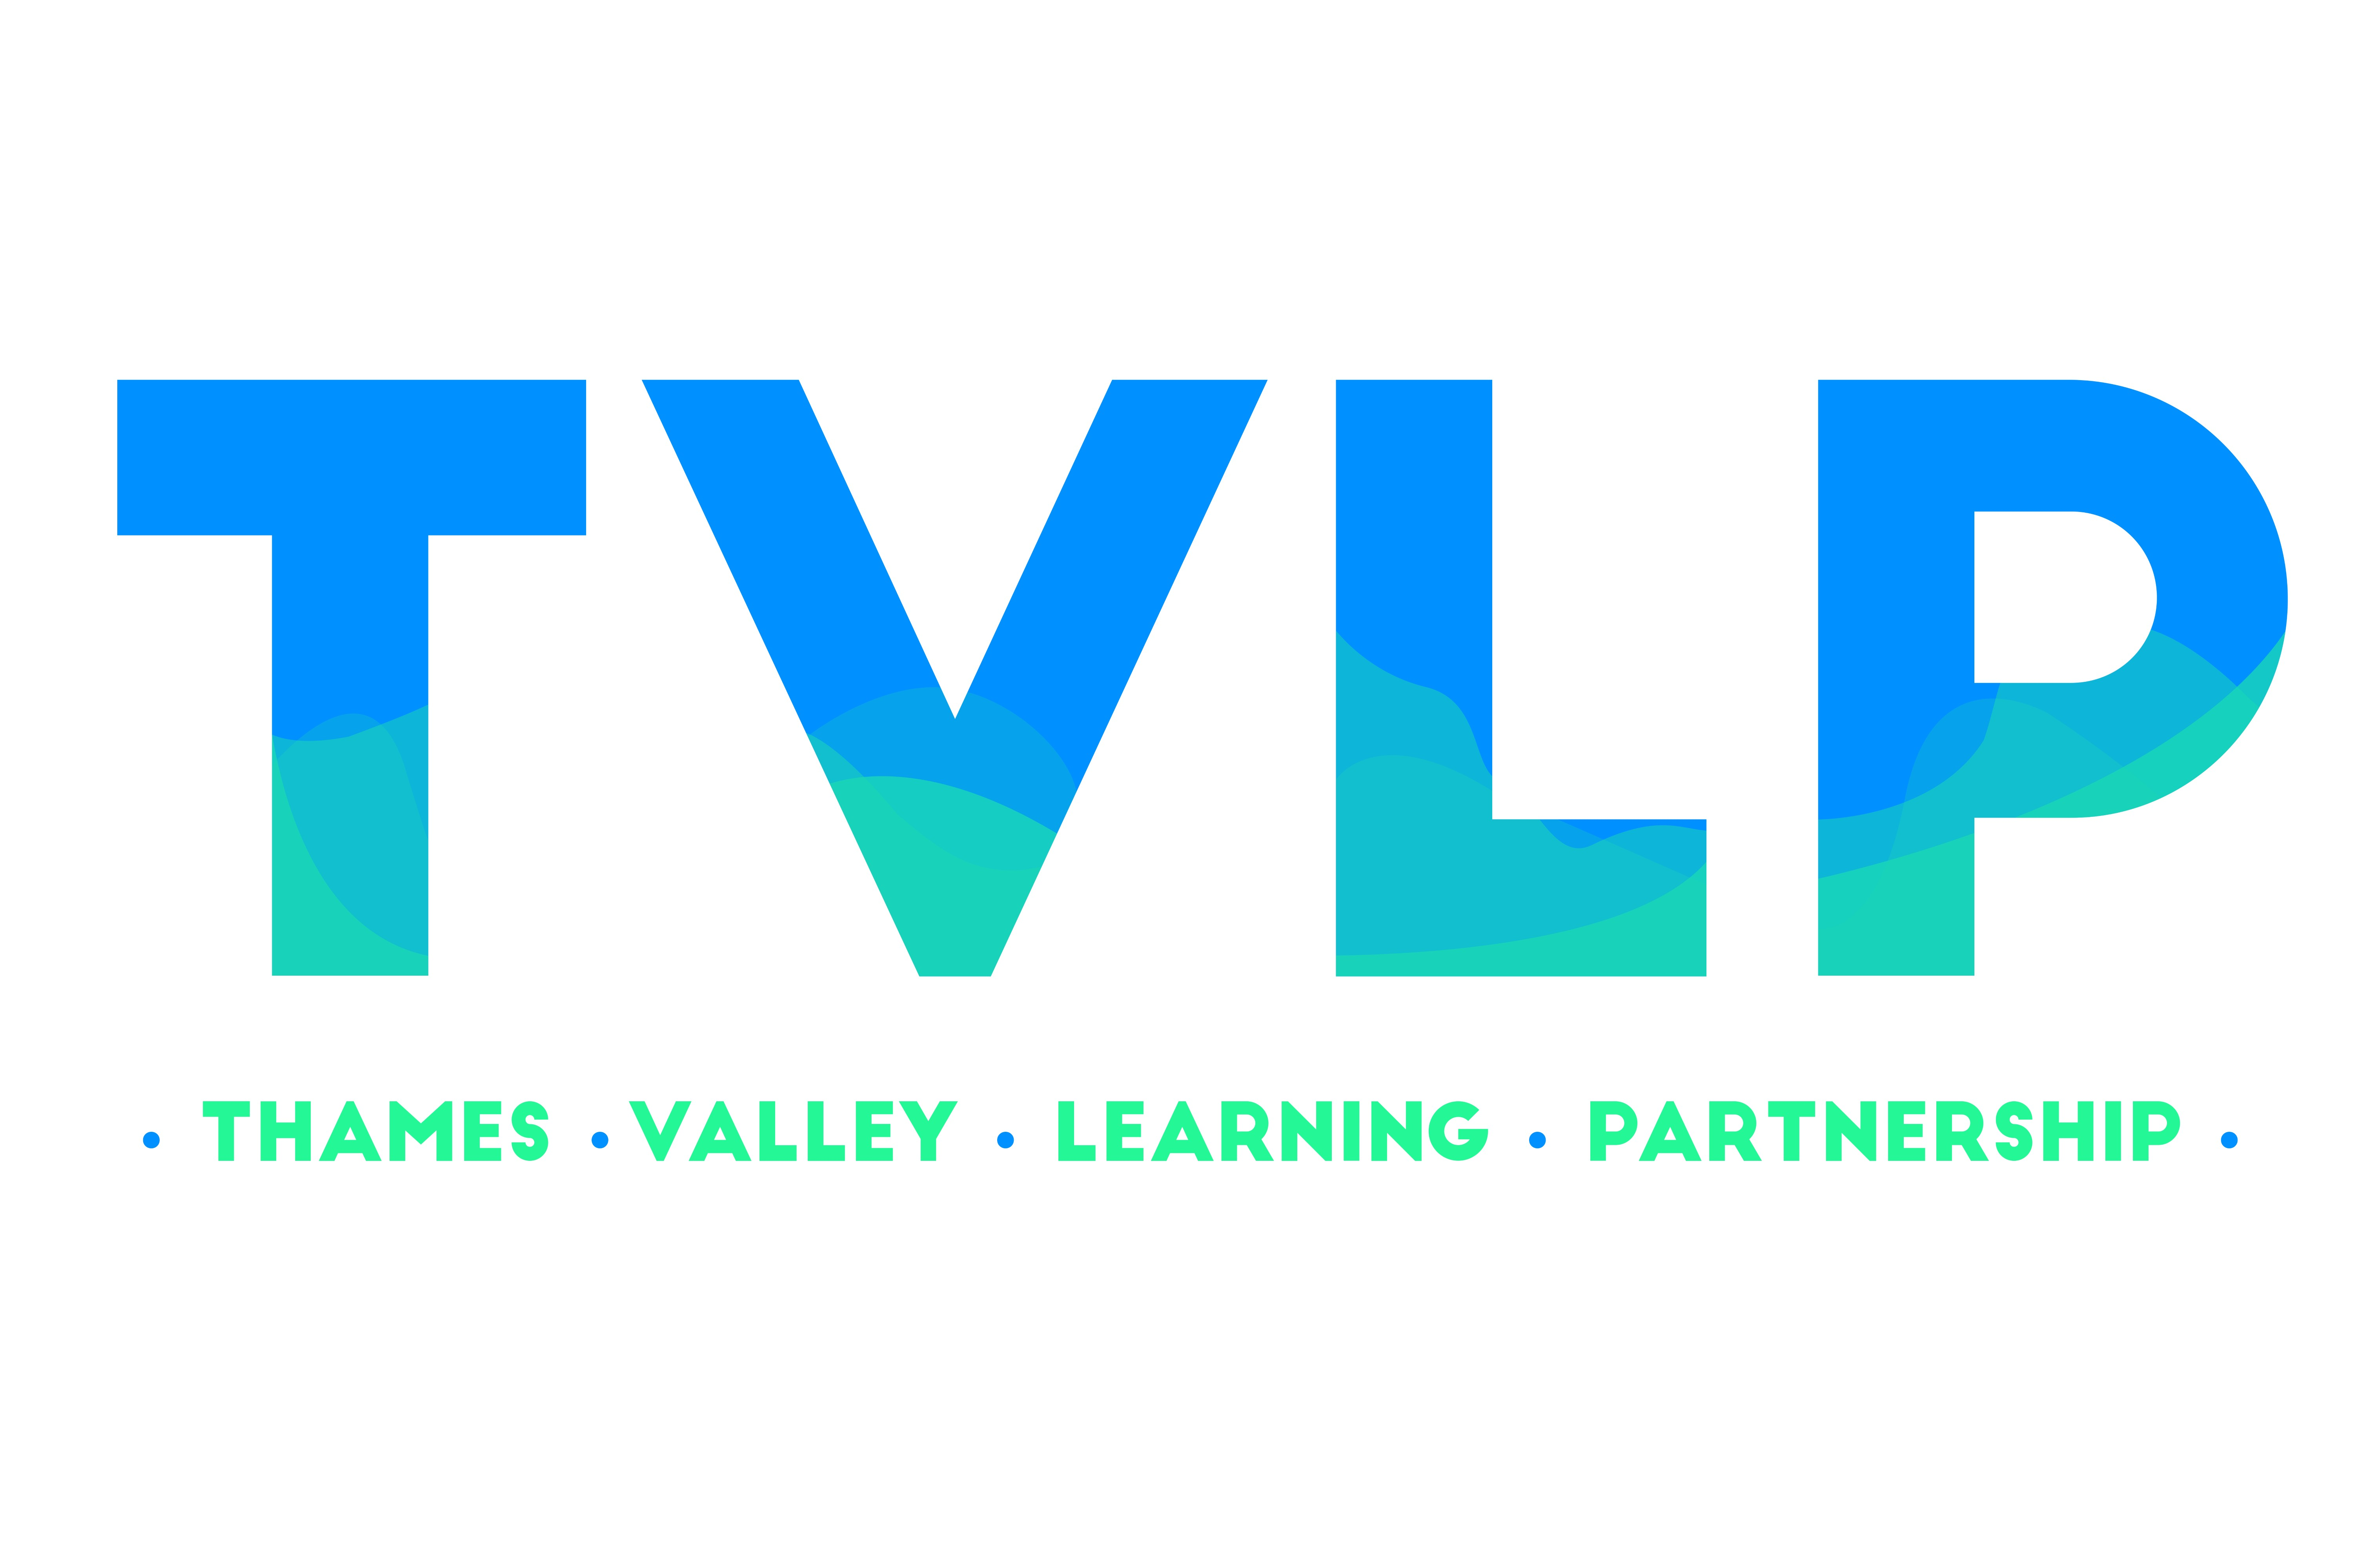 Thames Valley Learning Partnership